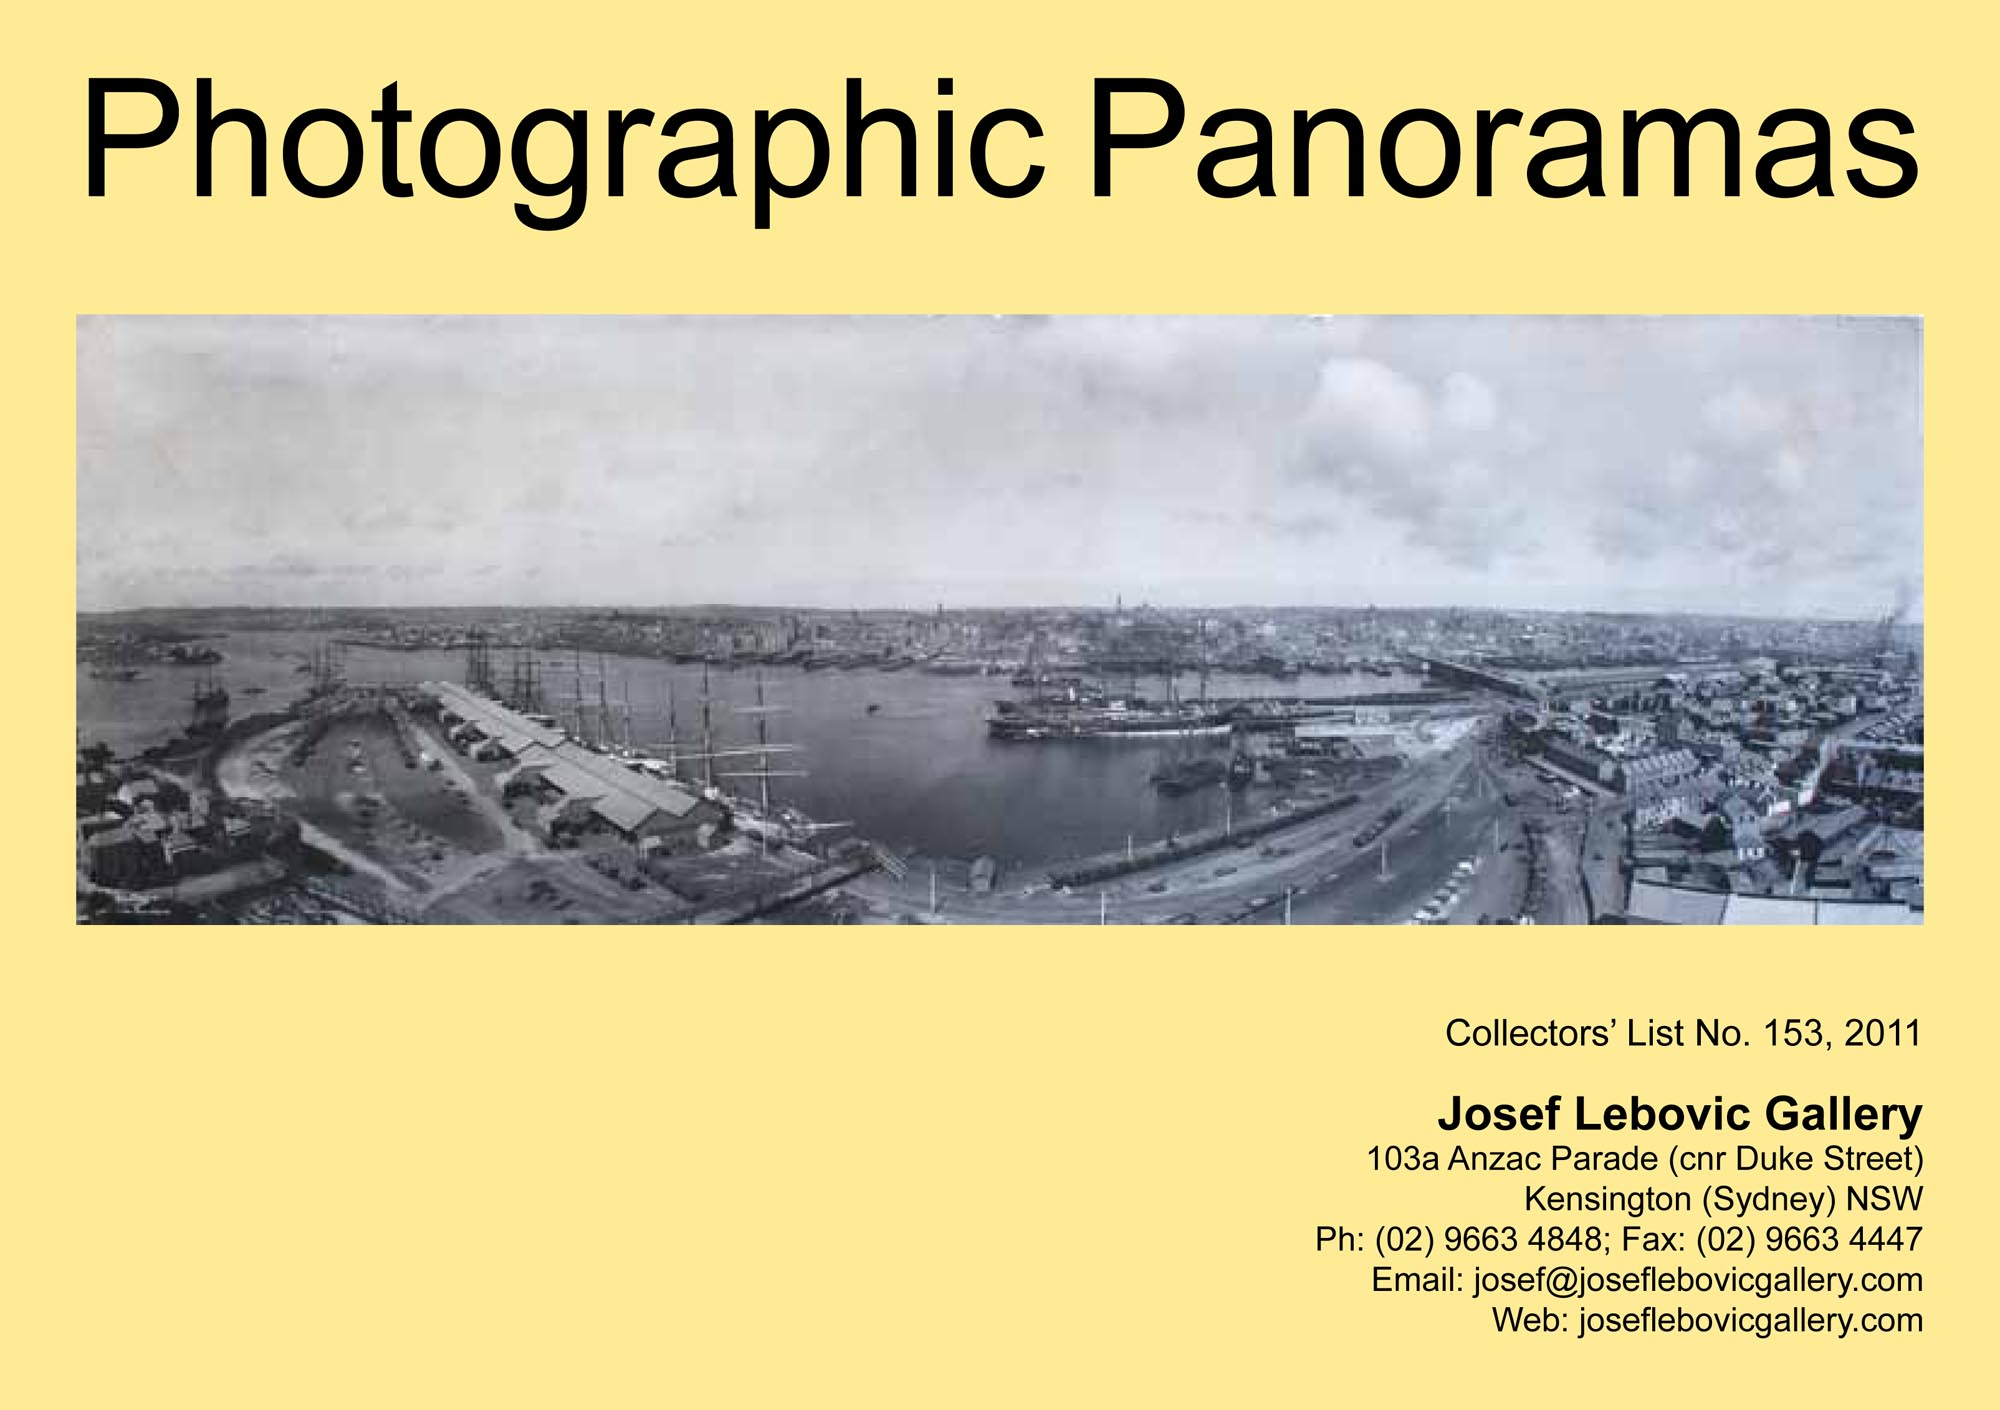 153 - Photographic Panoramas